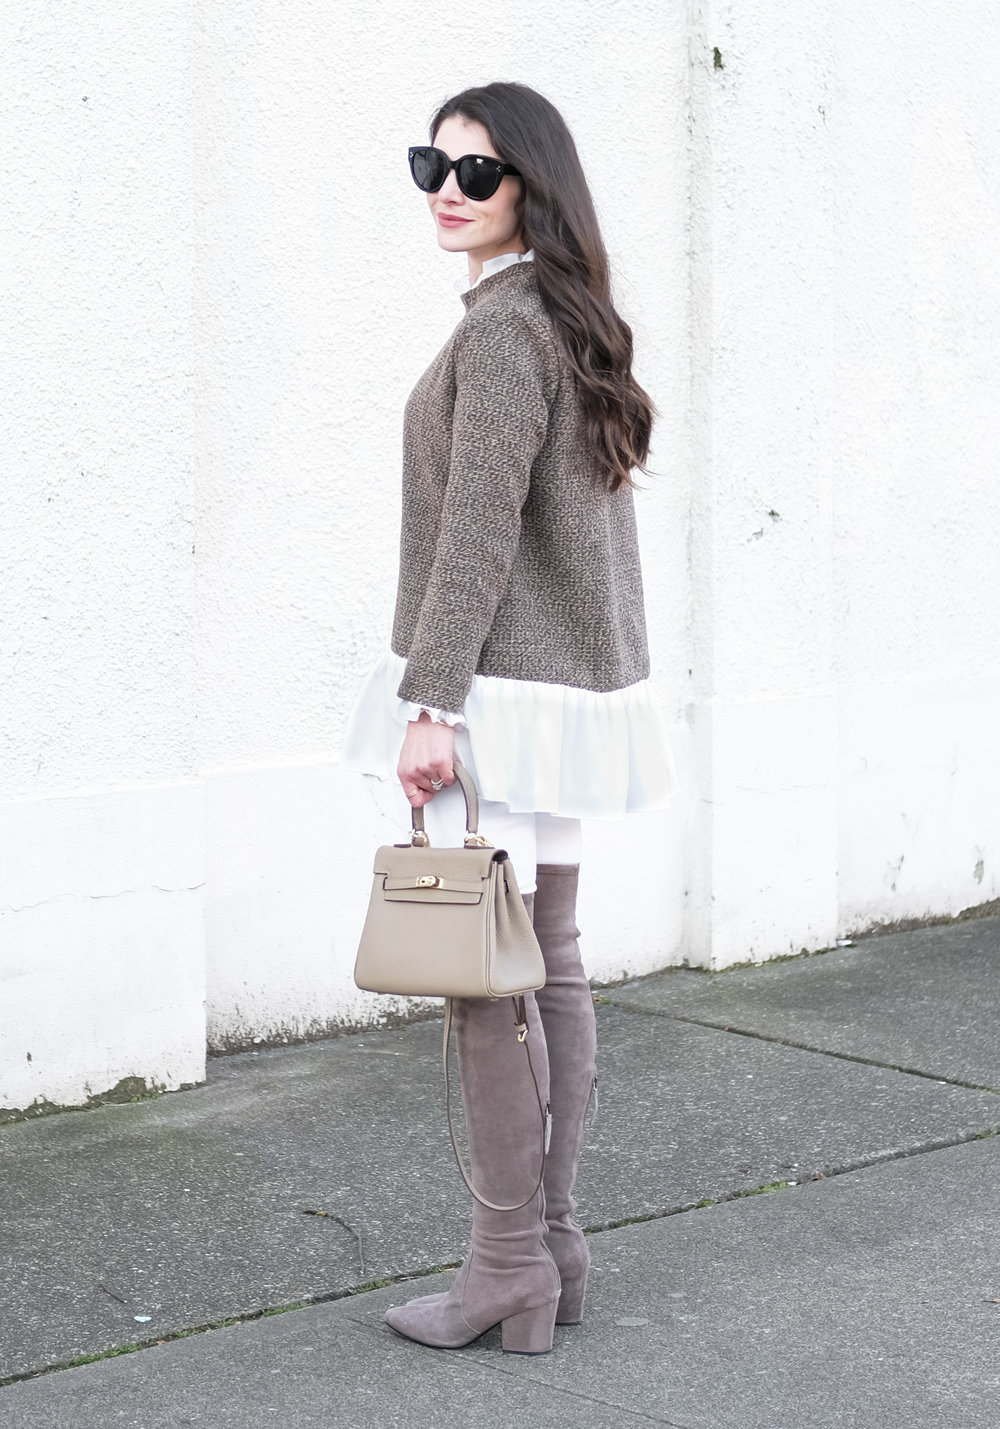 Cute winter or early spring outfit.  Shein sweater with ruffle hem, white skinny jeans, Goodnight Macaroon Carina over the knee boots, Hermes Kelly dupe handbag, and Celine Audrey sunglasses.